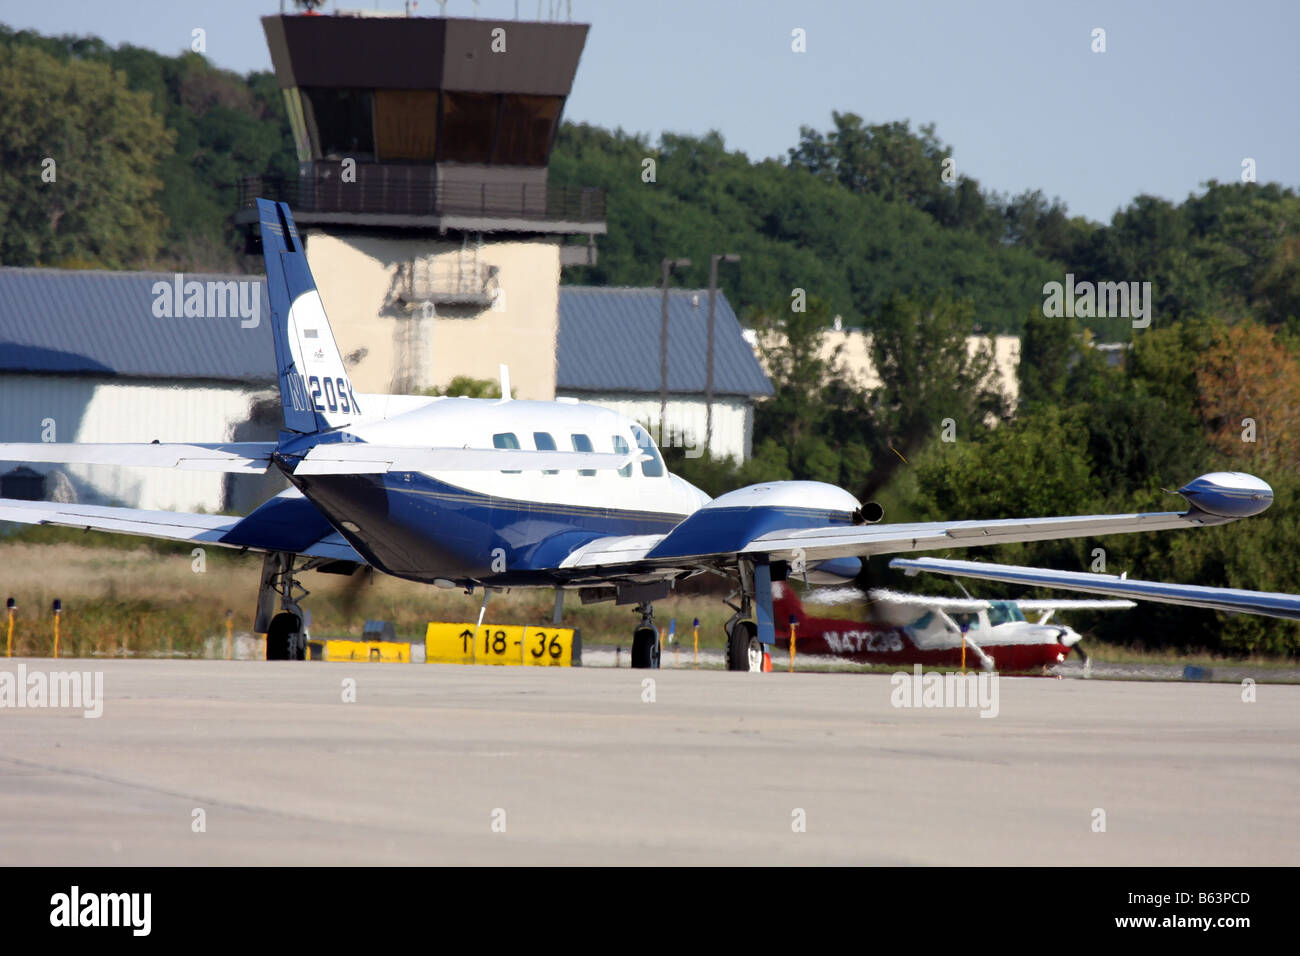 A twin engine Piper taxing on the runway after landing at Crites Airfield in Waukesha Wisconsin Control tower in - Stock Image